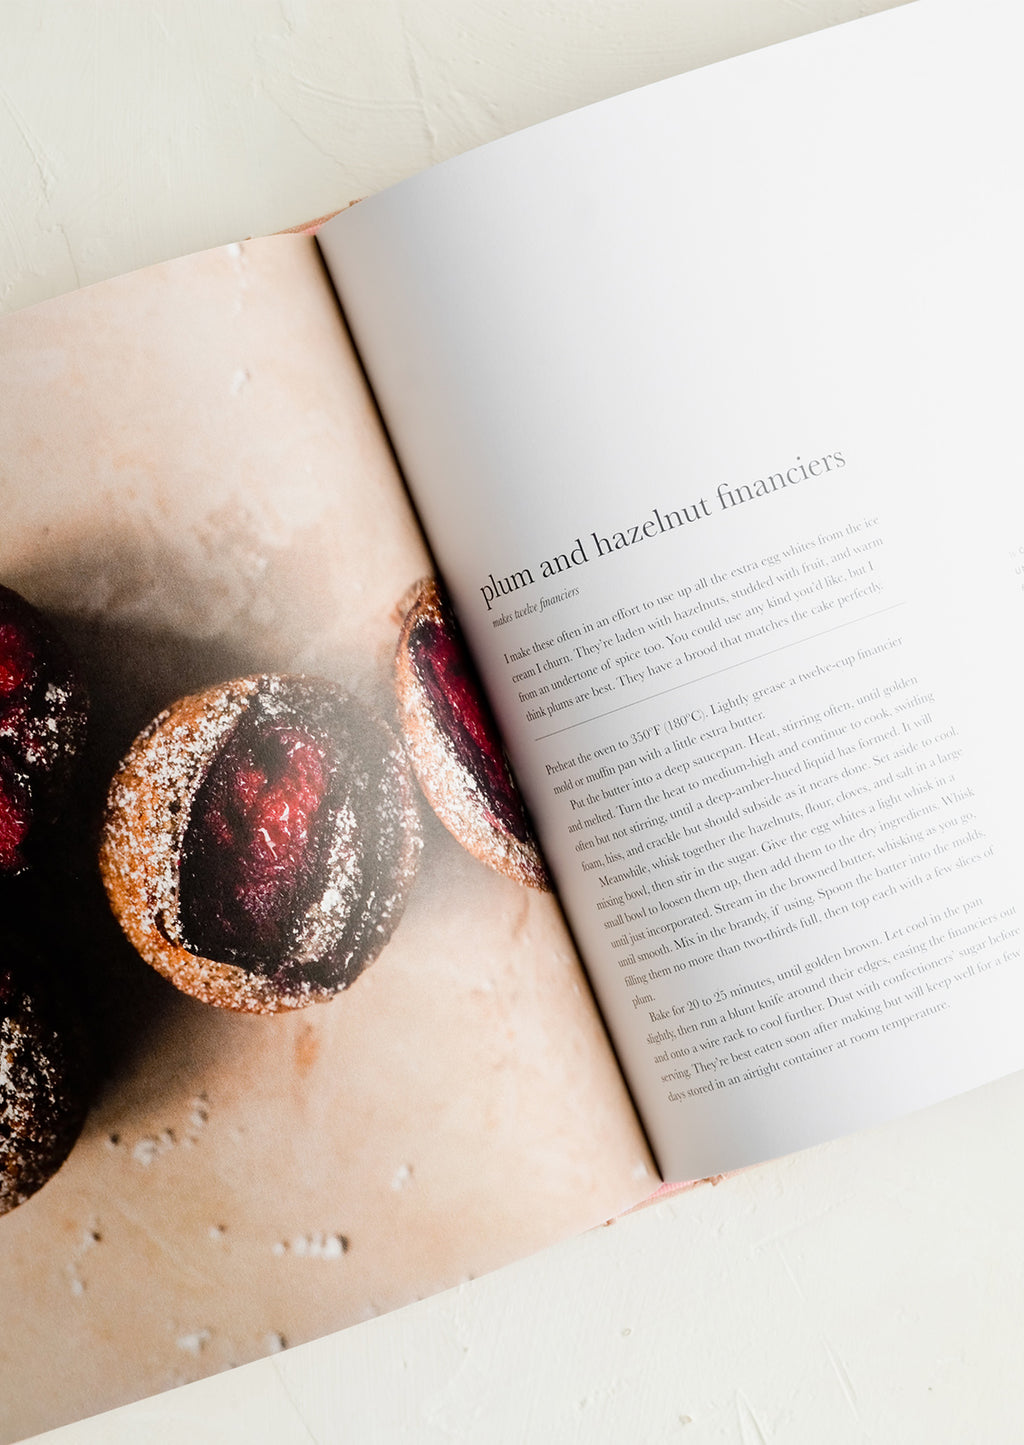 2: A recipe cookbook opened to recipe for plum and hazelnut financiers.